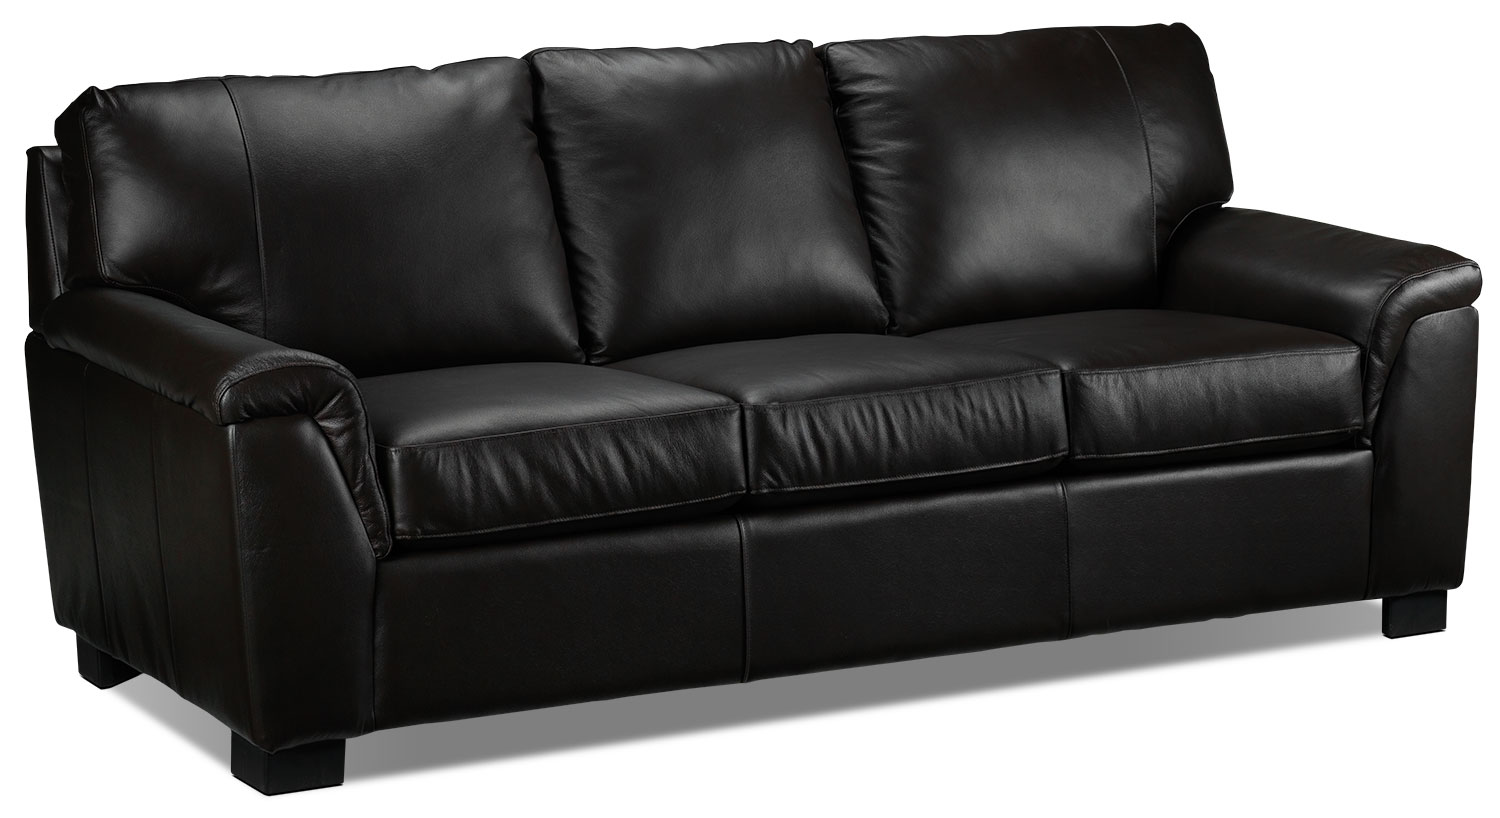 Living Room Furniture - Reynolds Sofa - Coffee